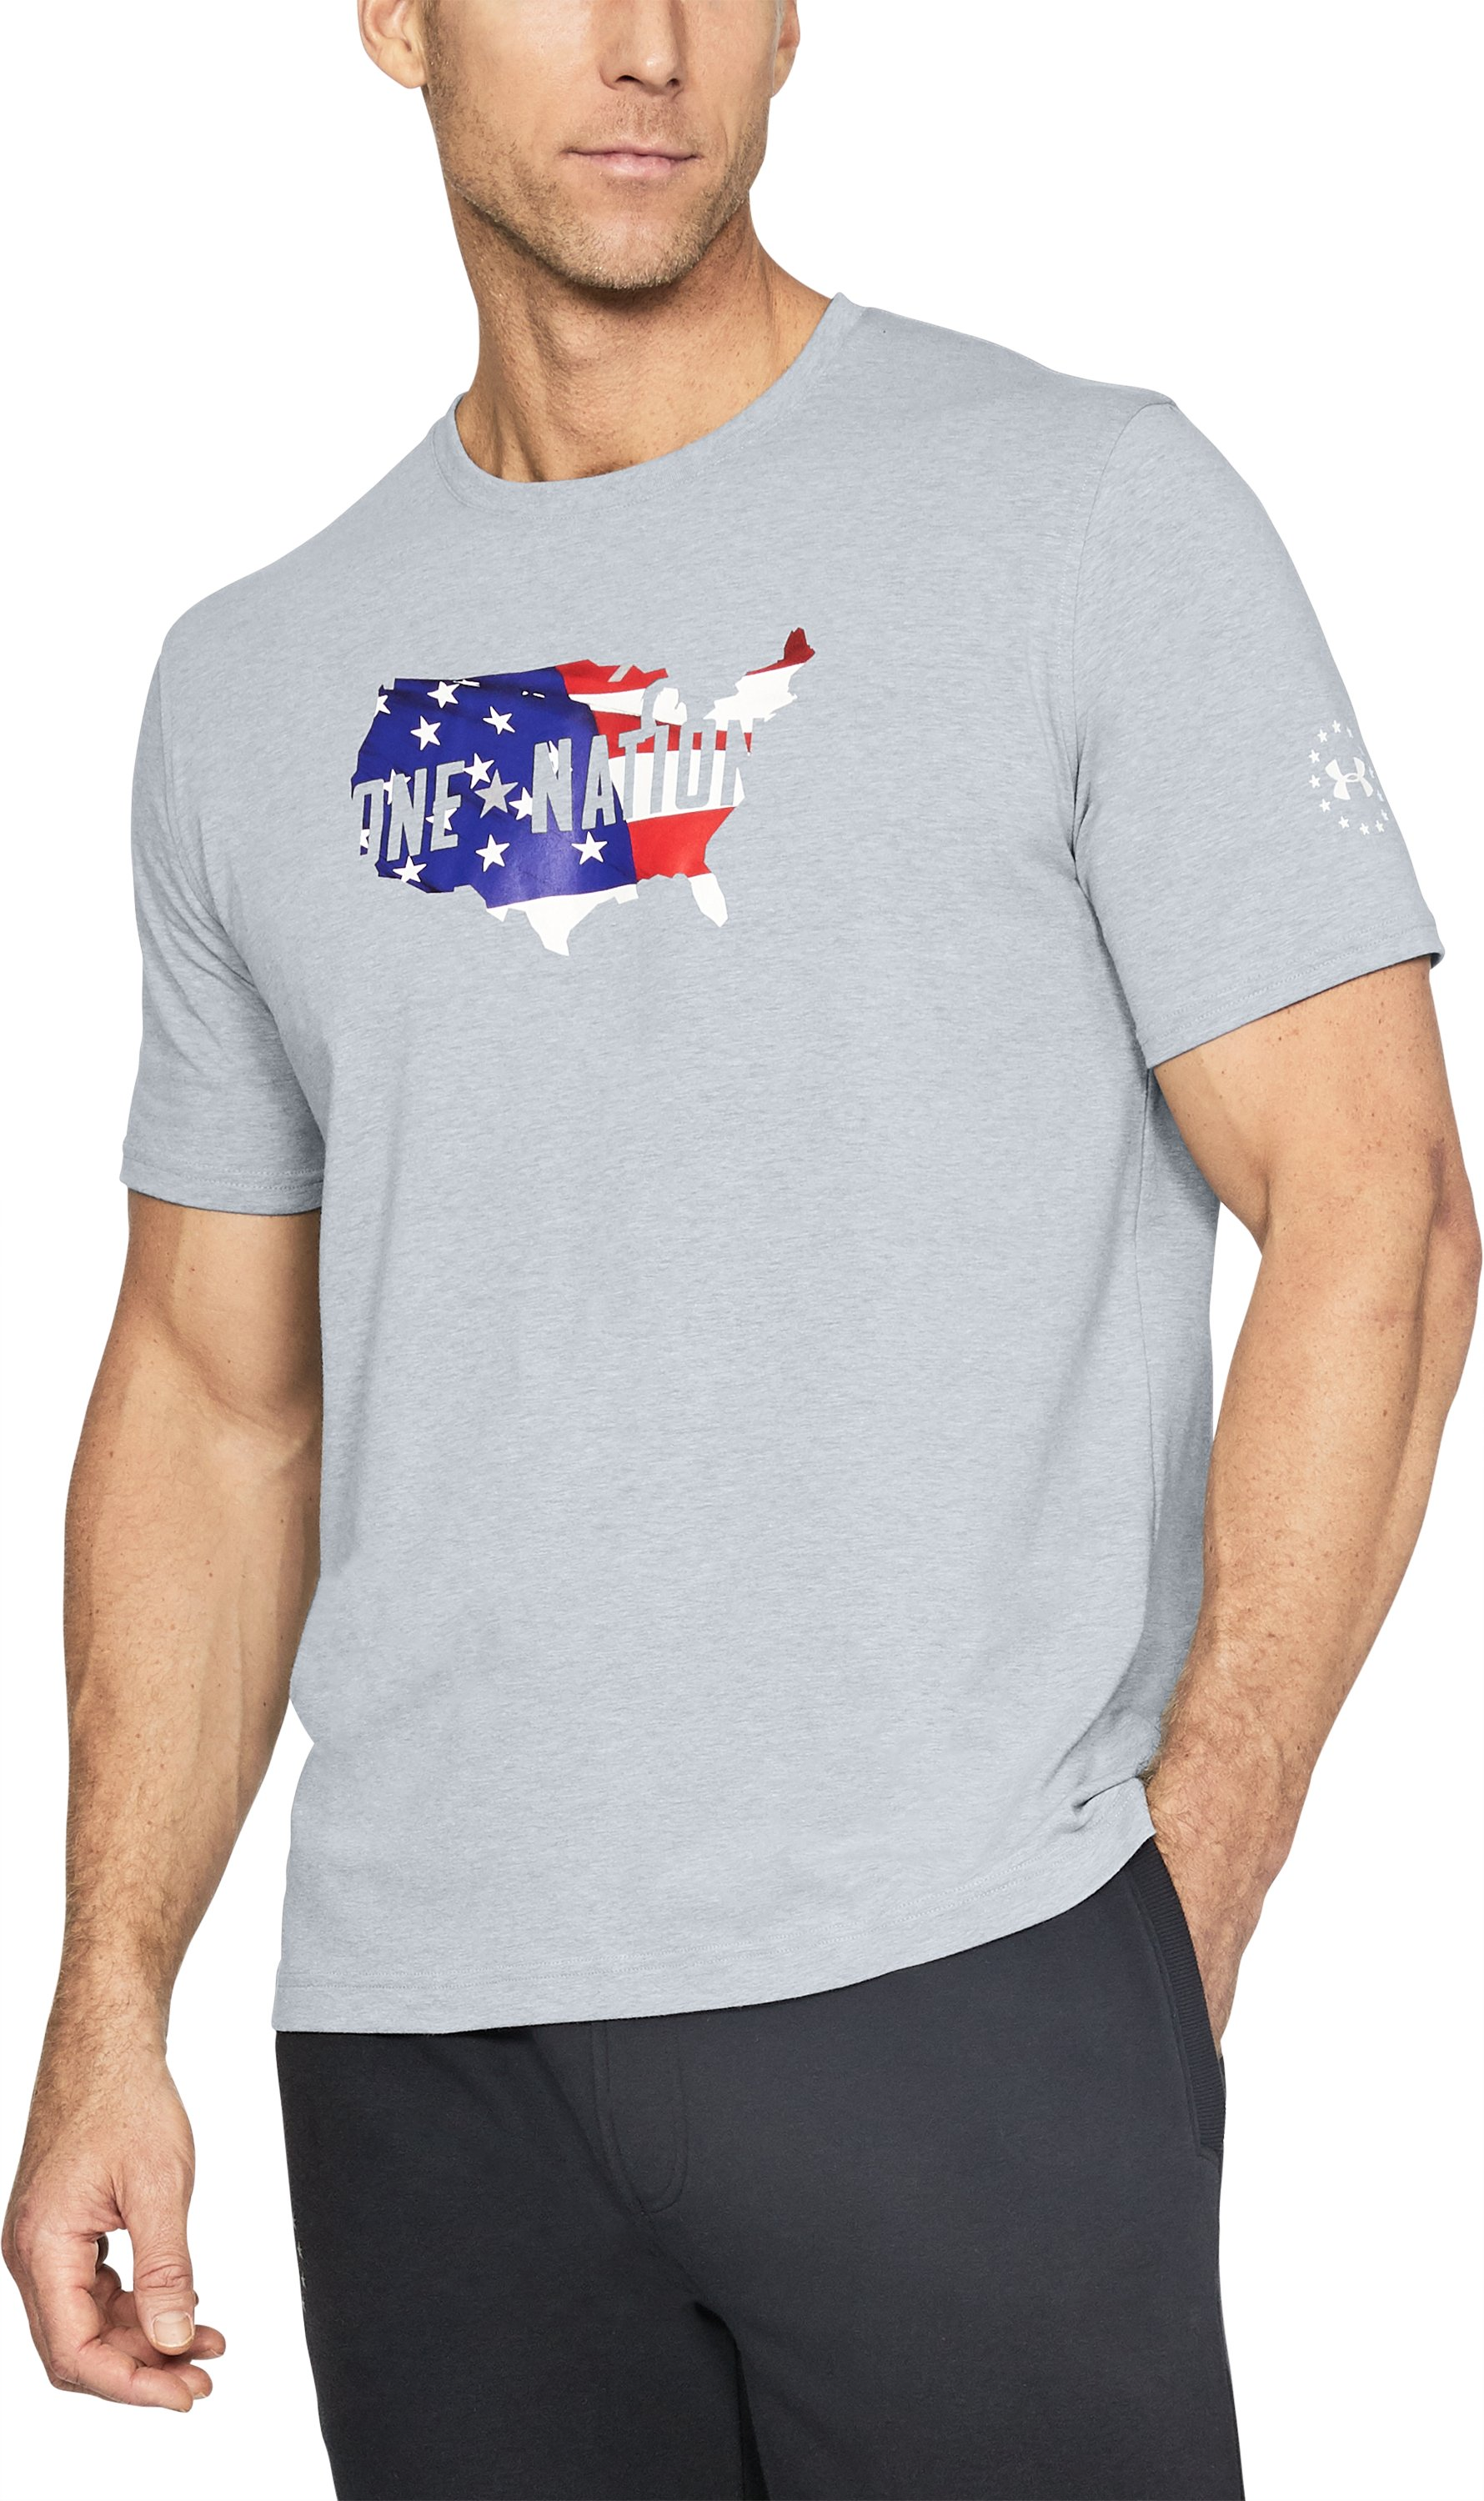 Men's UA Freedom One Nation Fill T-Shirt, STEEL LIGHT HEATHER, undefined